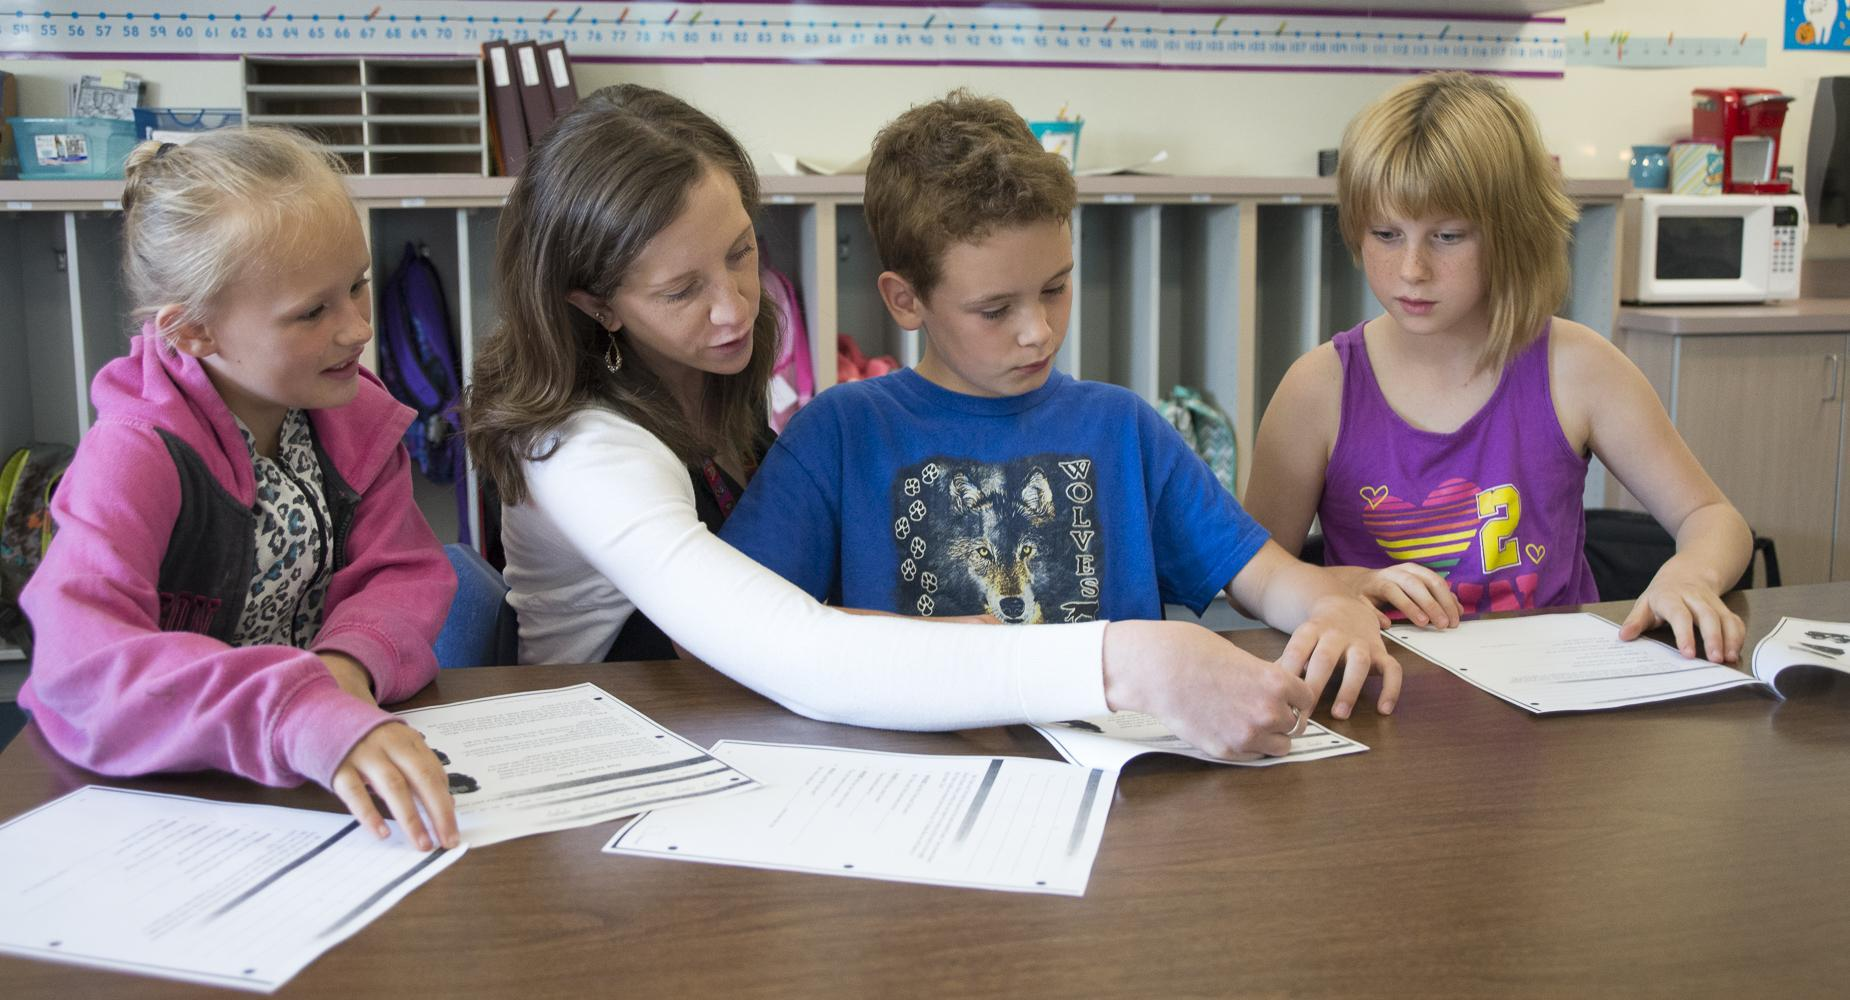 Teacher helps three children with a worksheet